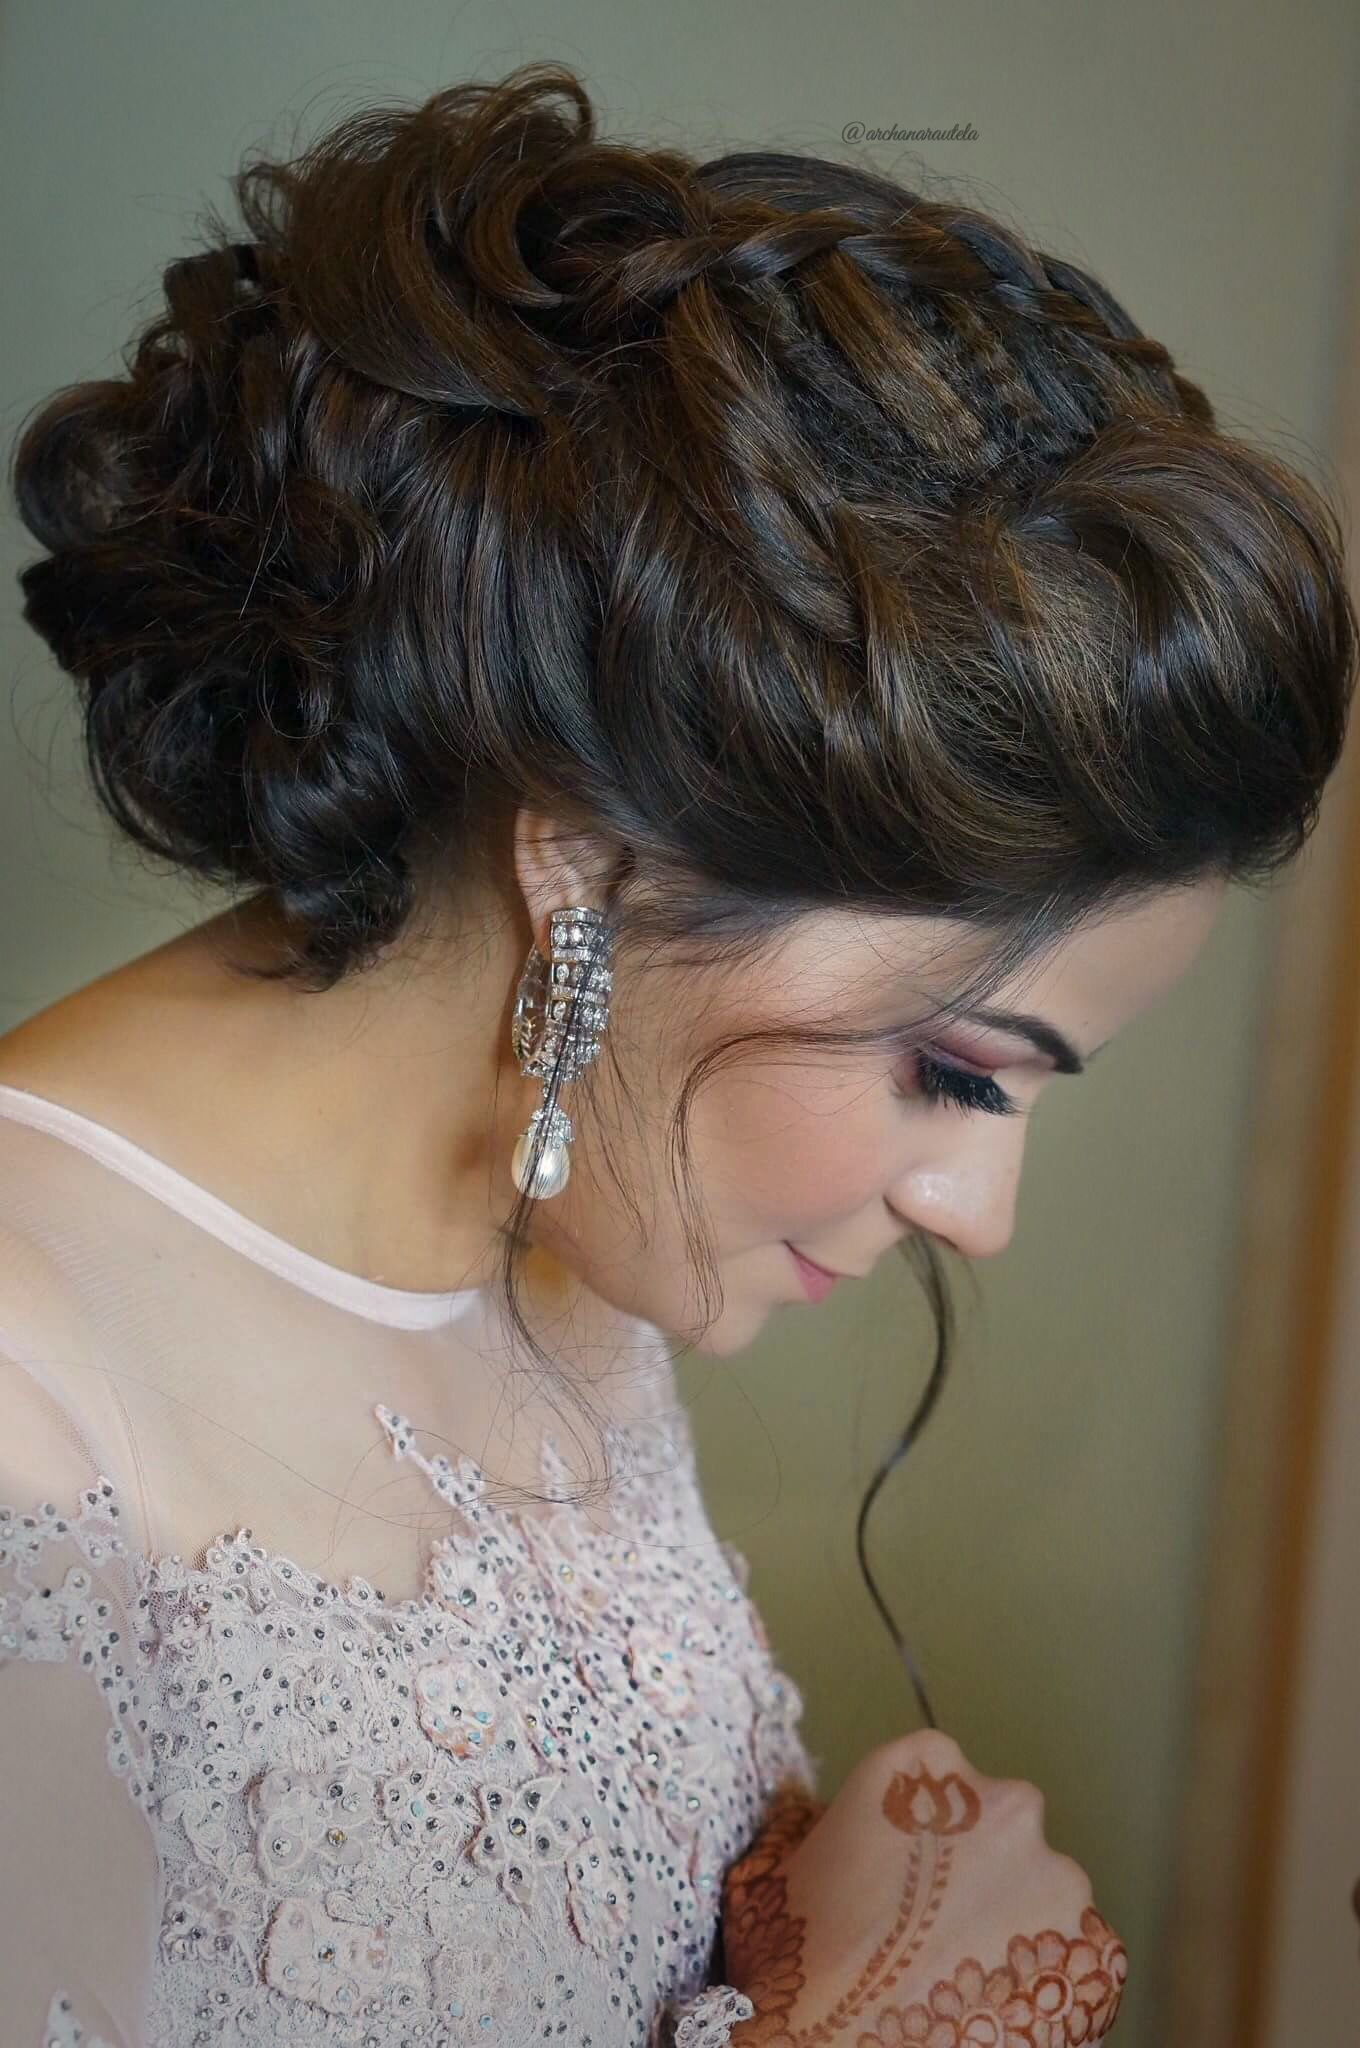 nidhi👰🏼💍 looking gorgeous with braided messy bun